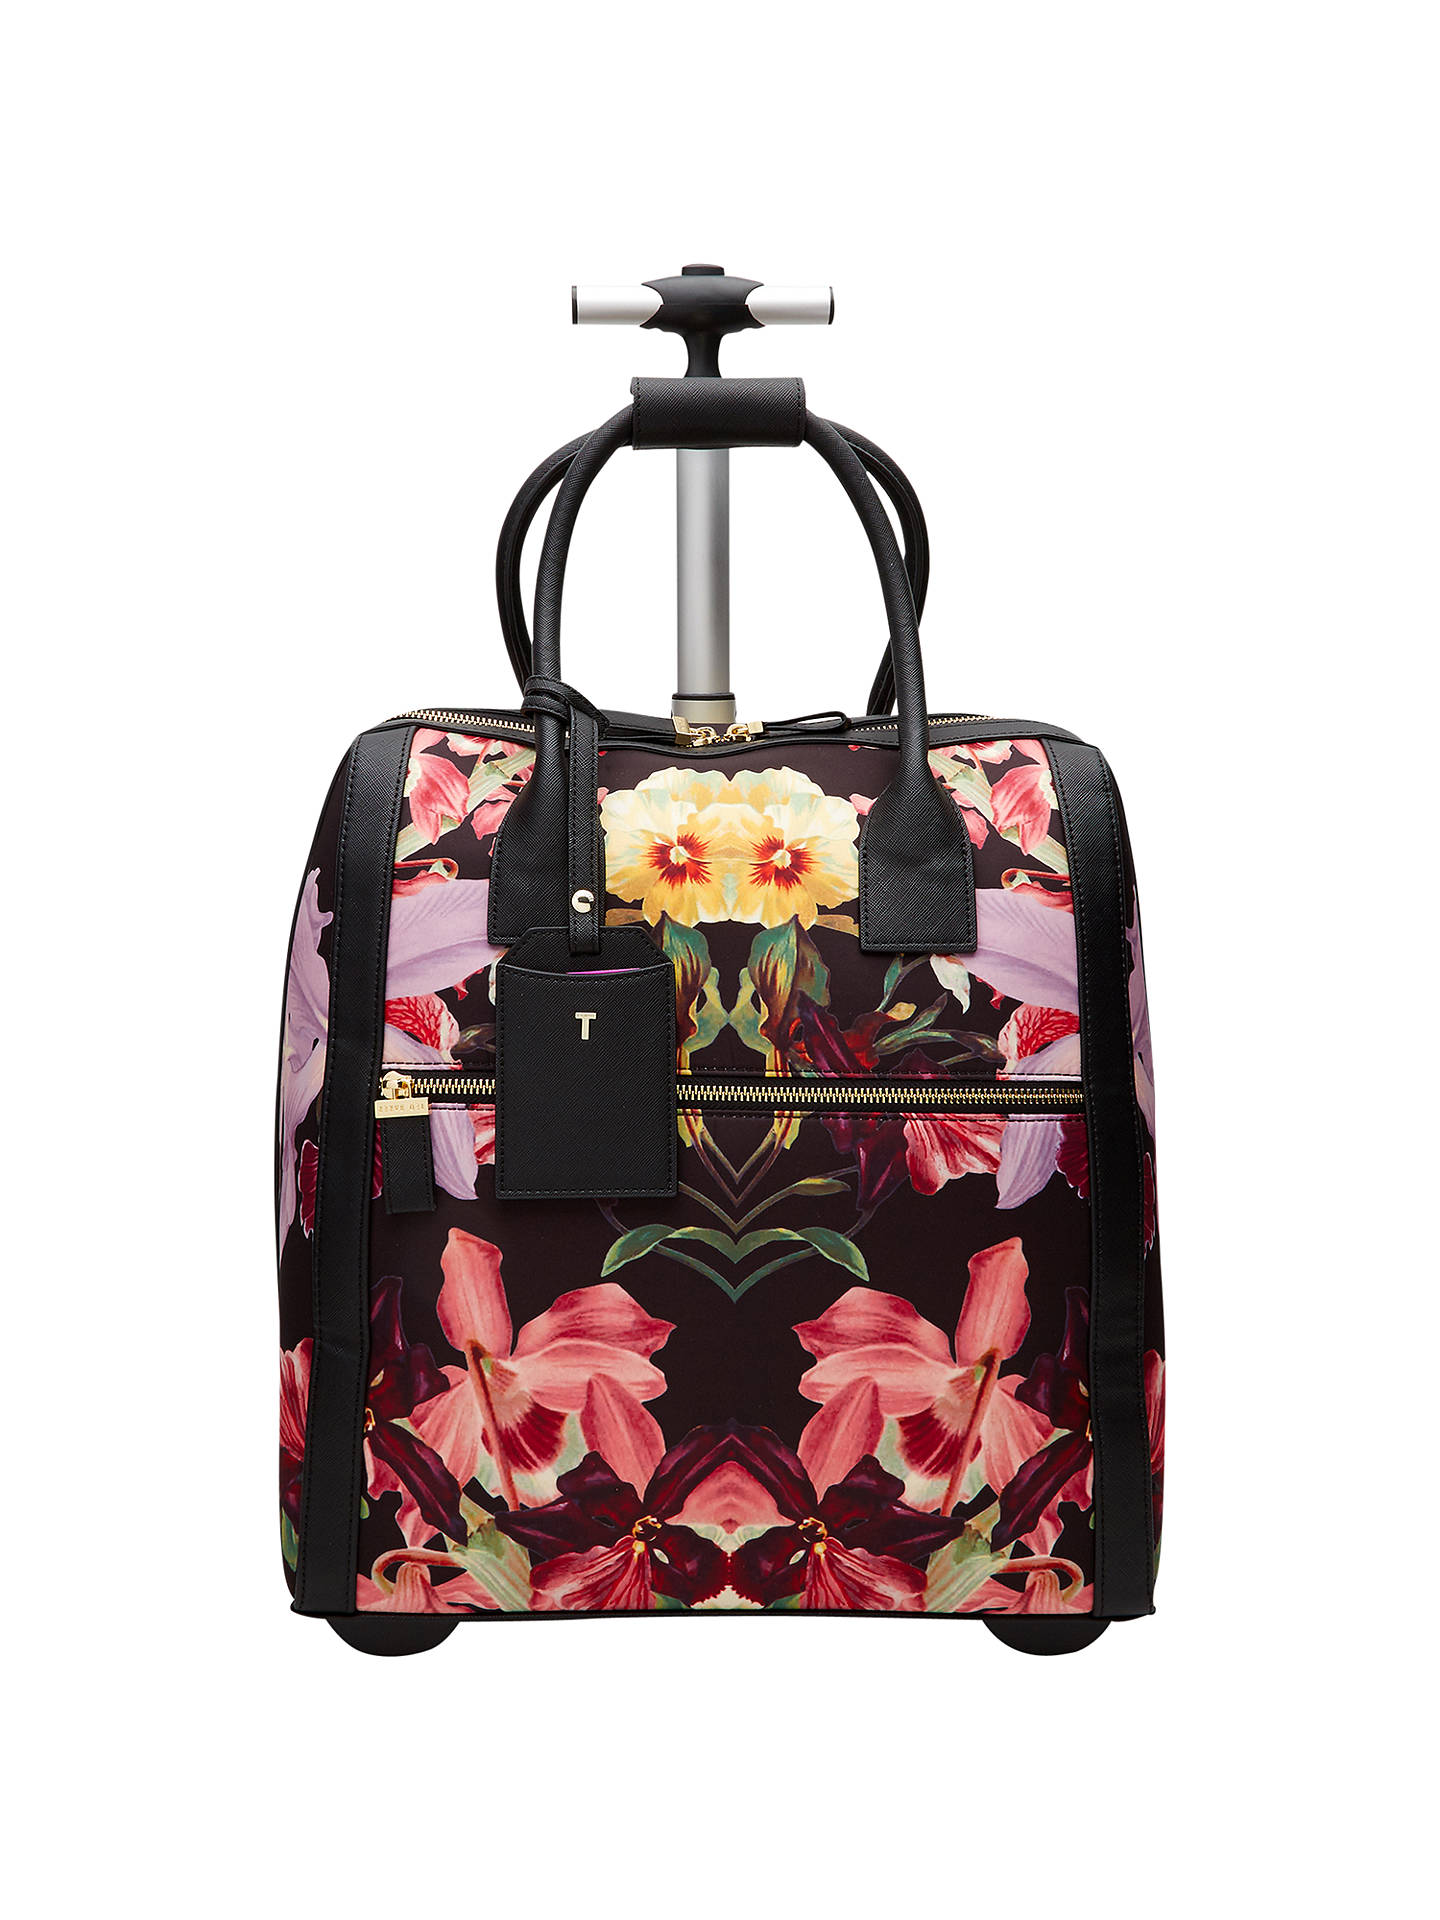 7989b2c81 Buy Ted Baker Donnie Lost Gardens Travel Bag